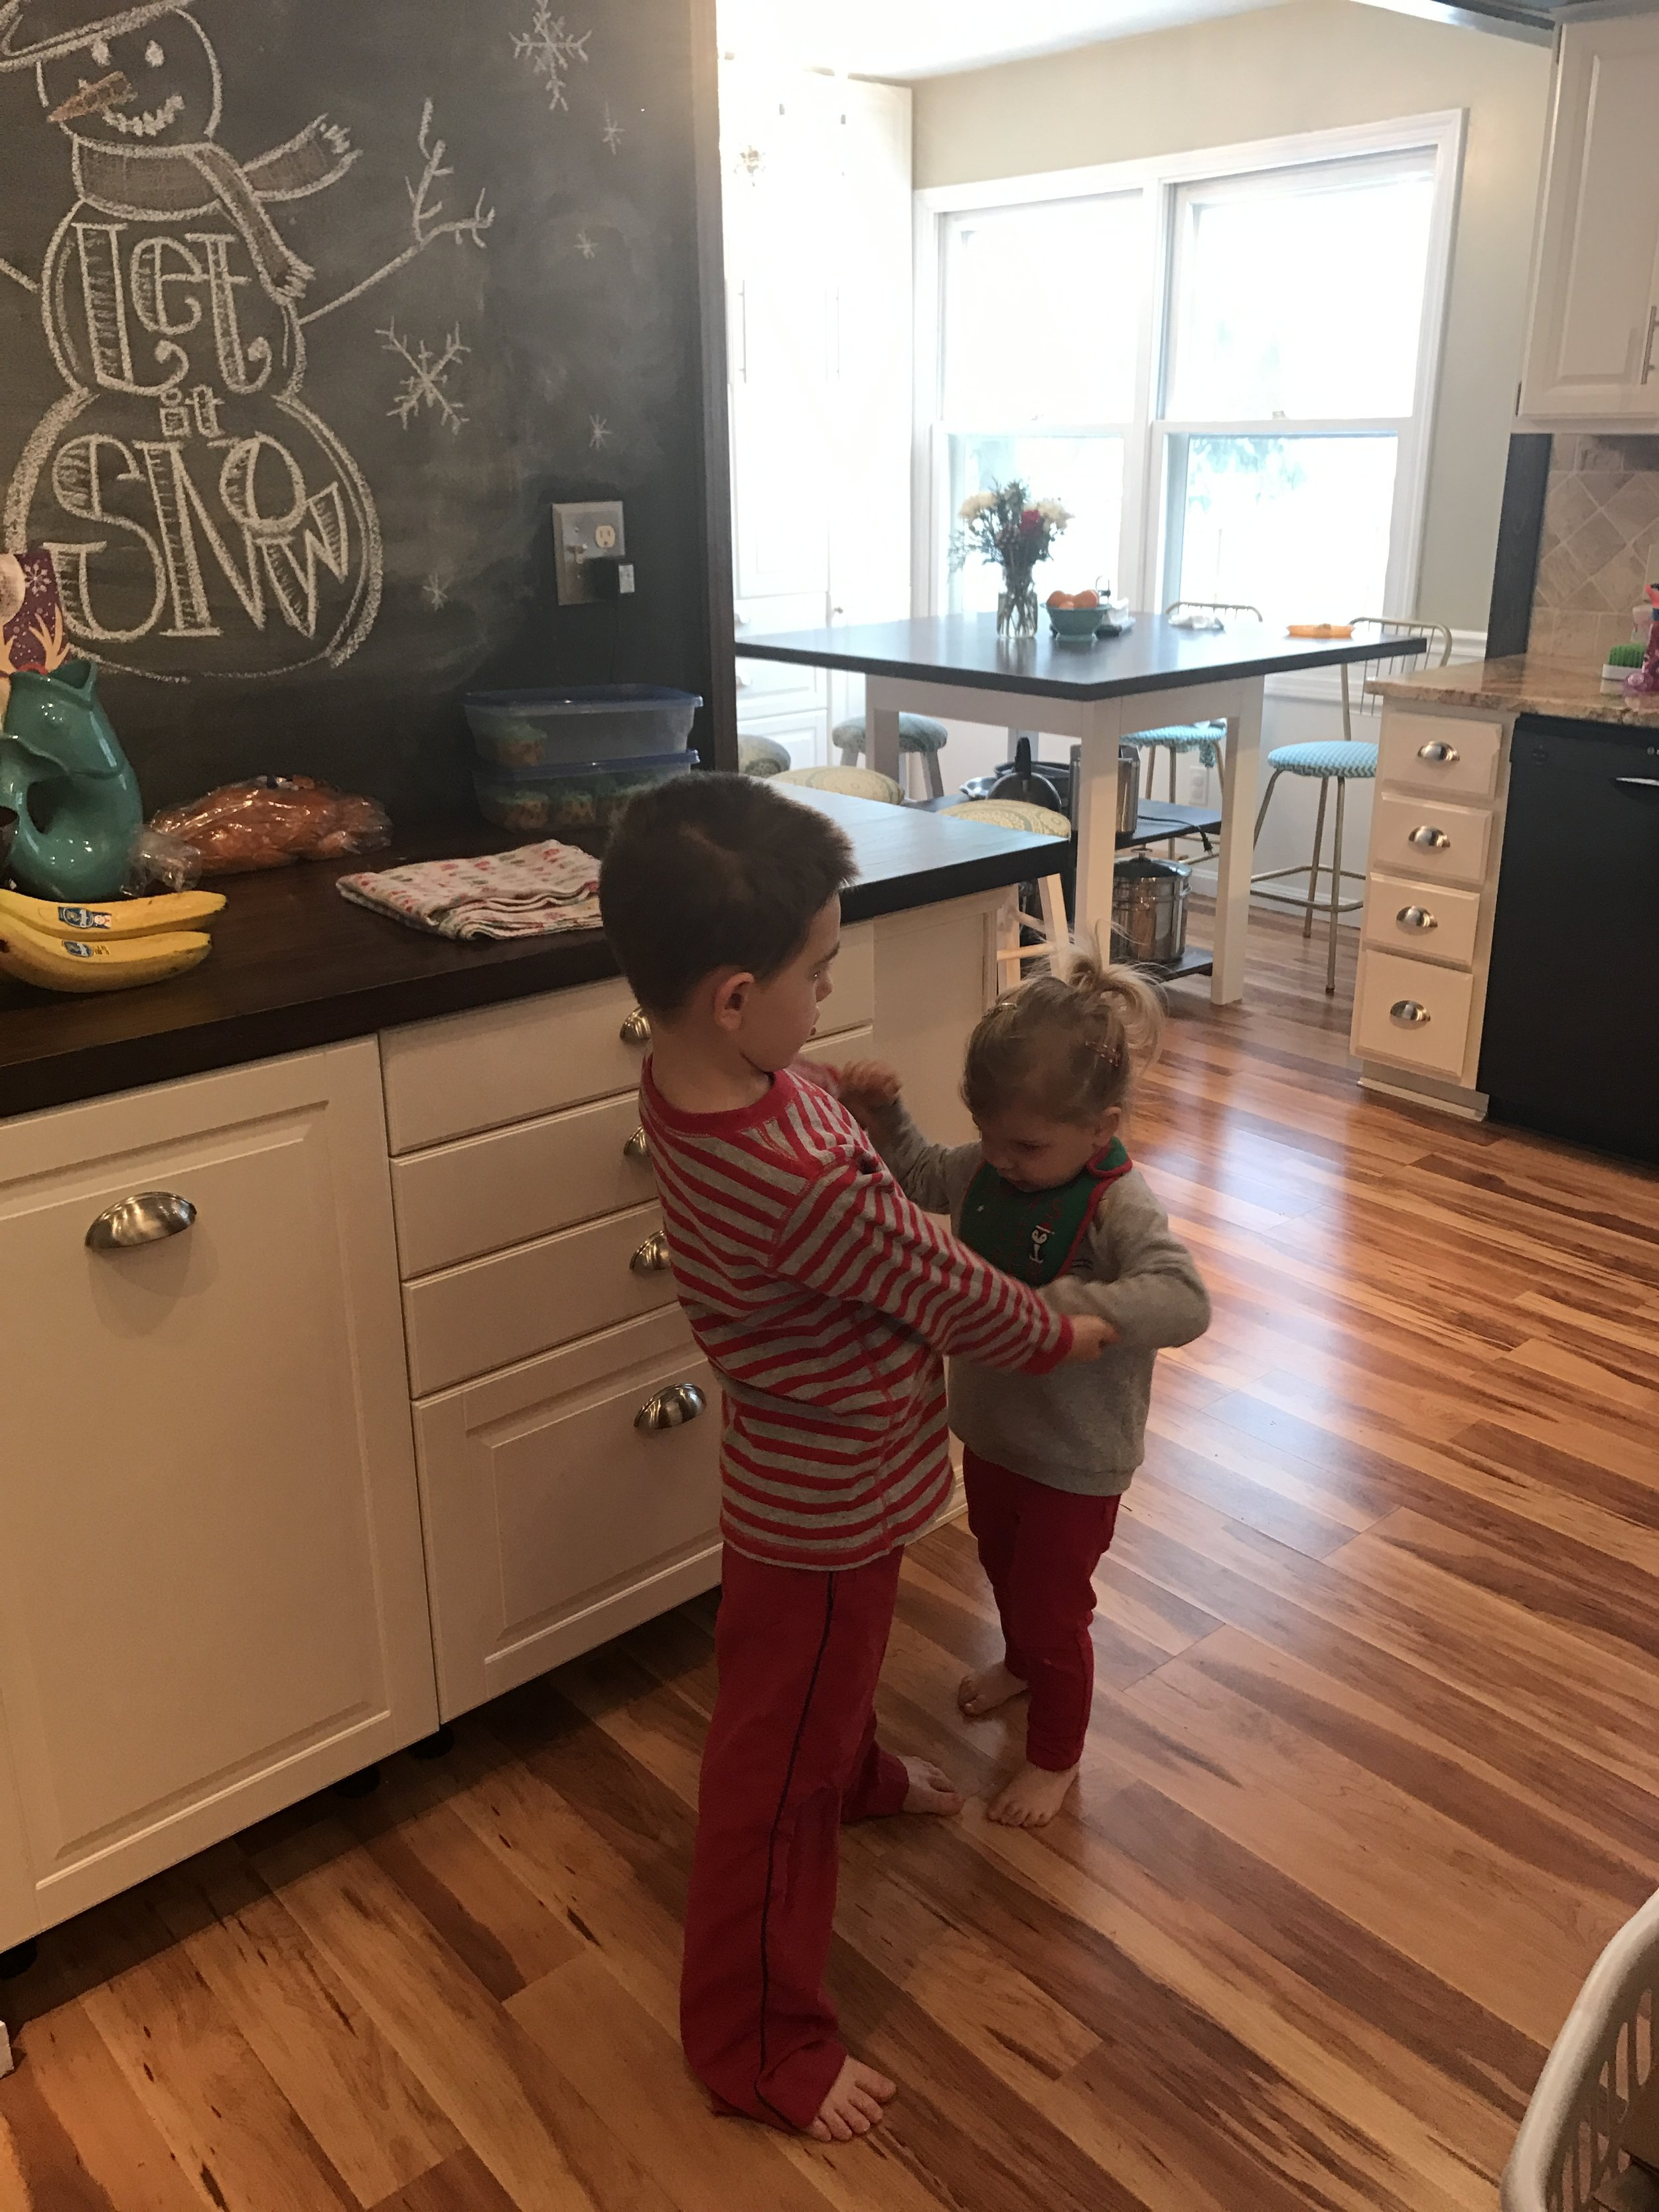 A kitchen dance party from over break